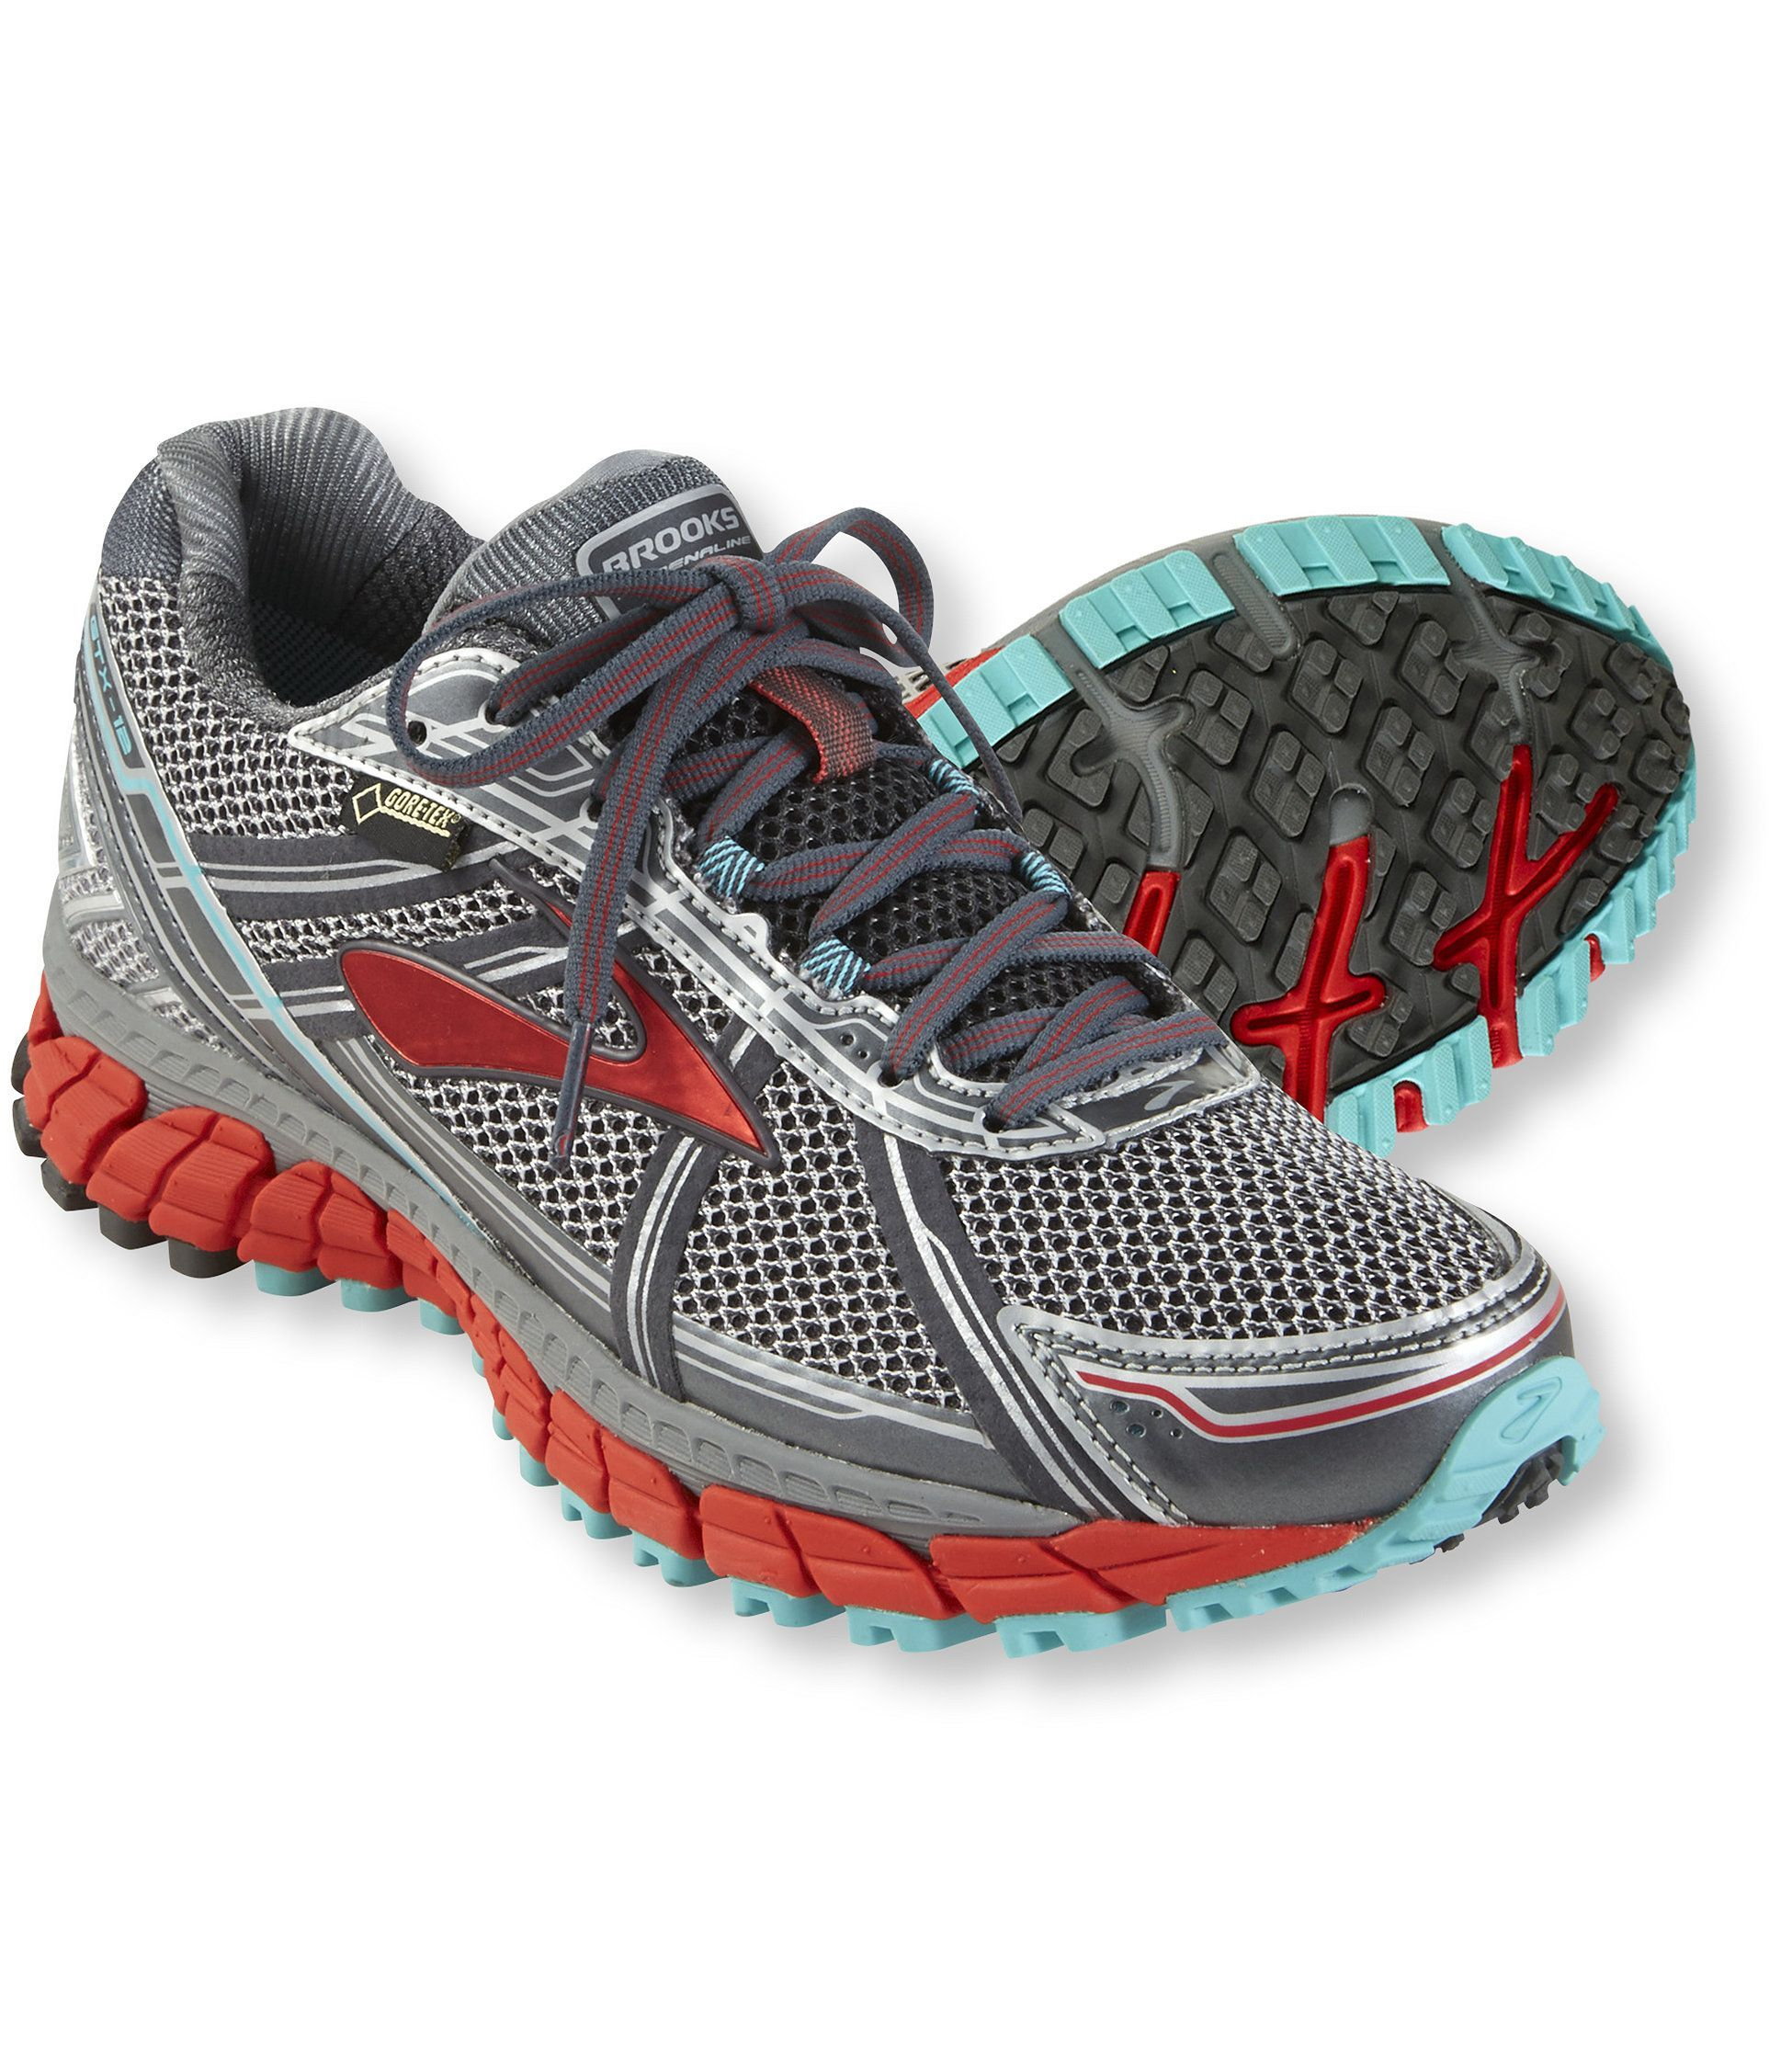 cf17b1804f825 Women s Brooks Adrenaline Asr 12 Gore-Tex Trail Running Shoes  http   feedproxy